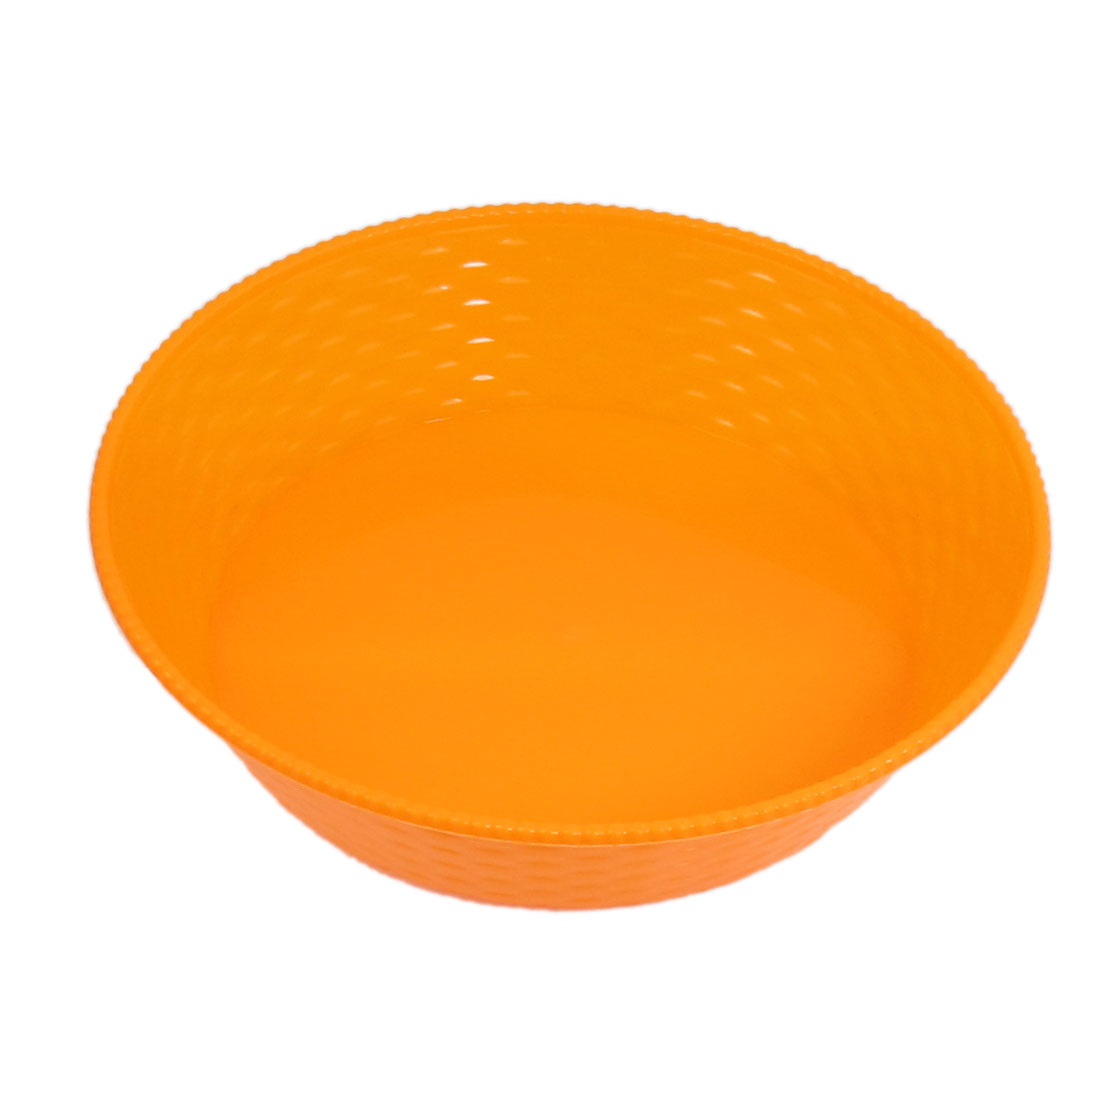 Orange Plastic Round Shaped Sundries Storage Plate Holder for Home